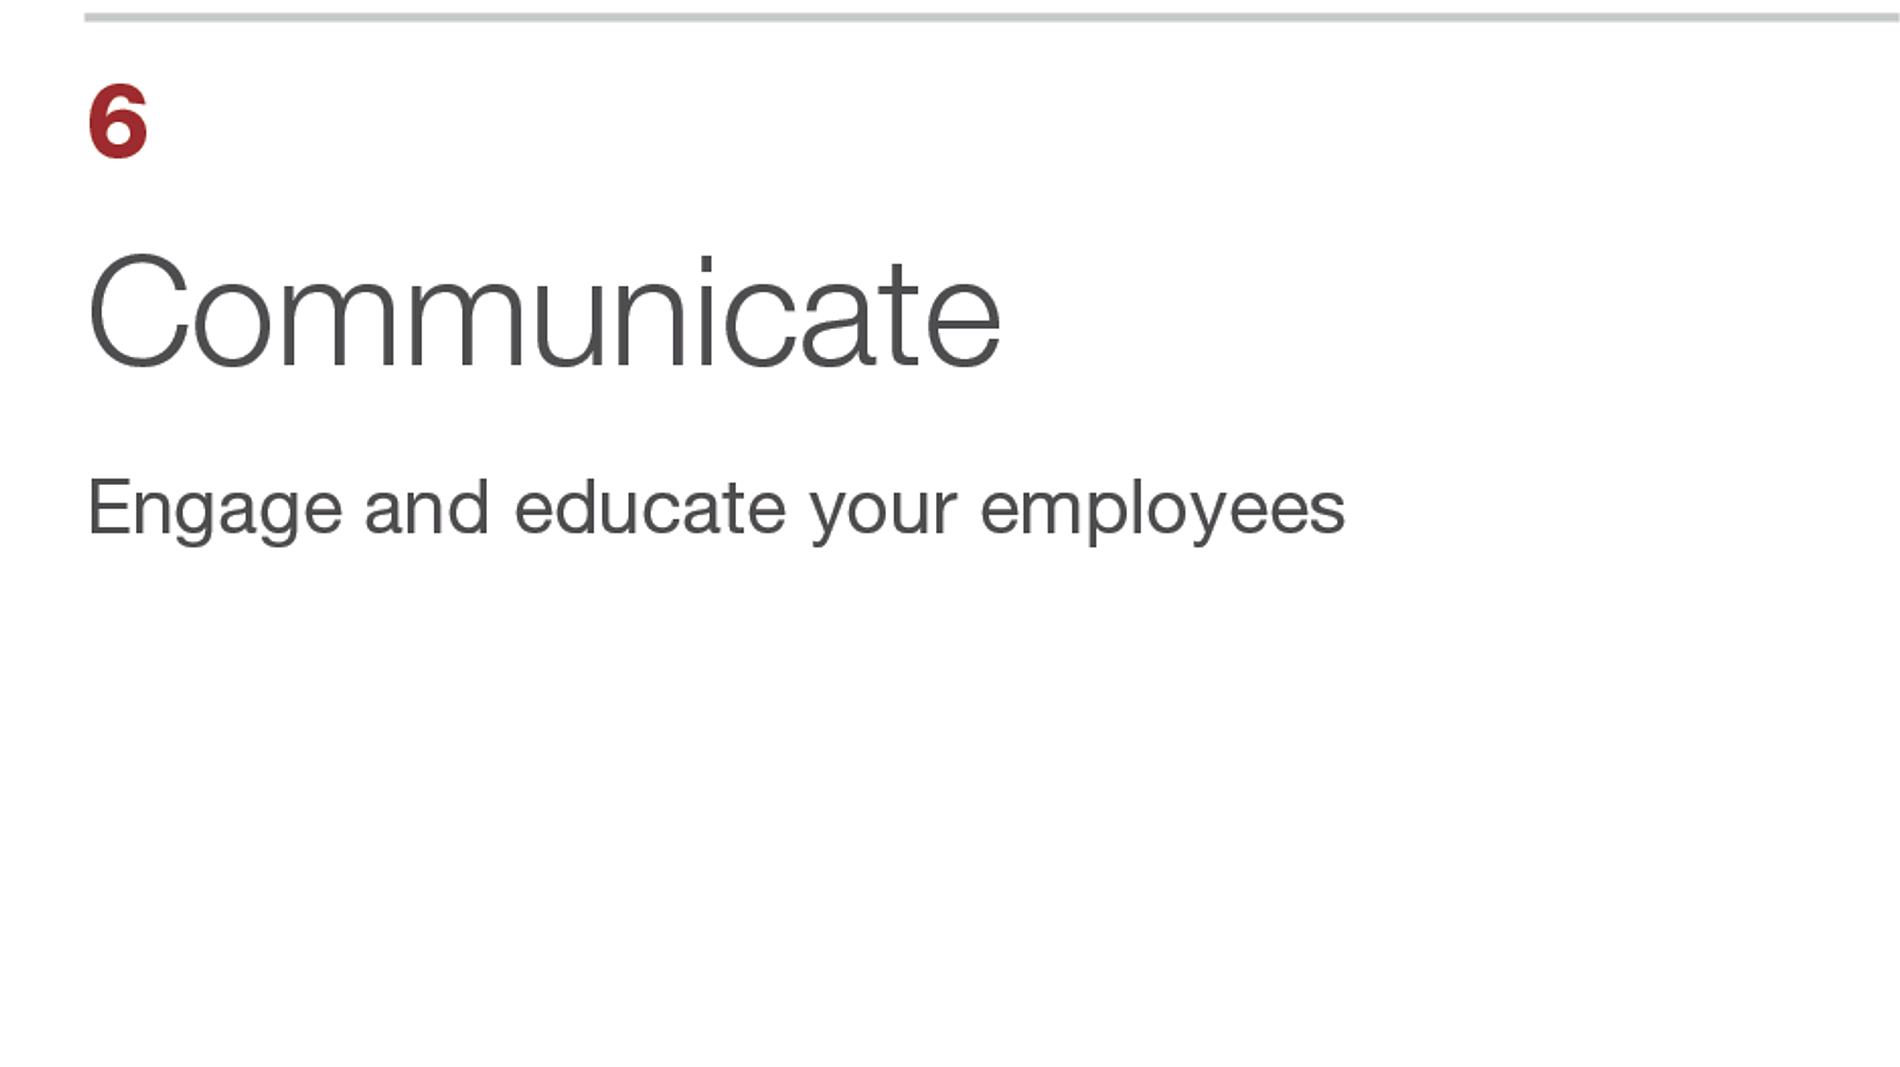 Communicate. Engage and educate your employees